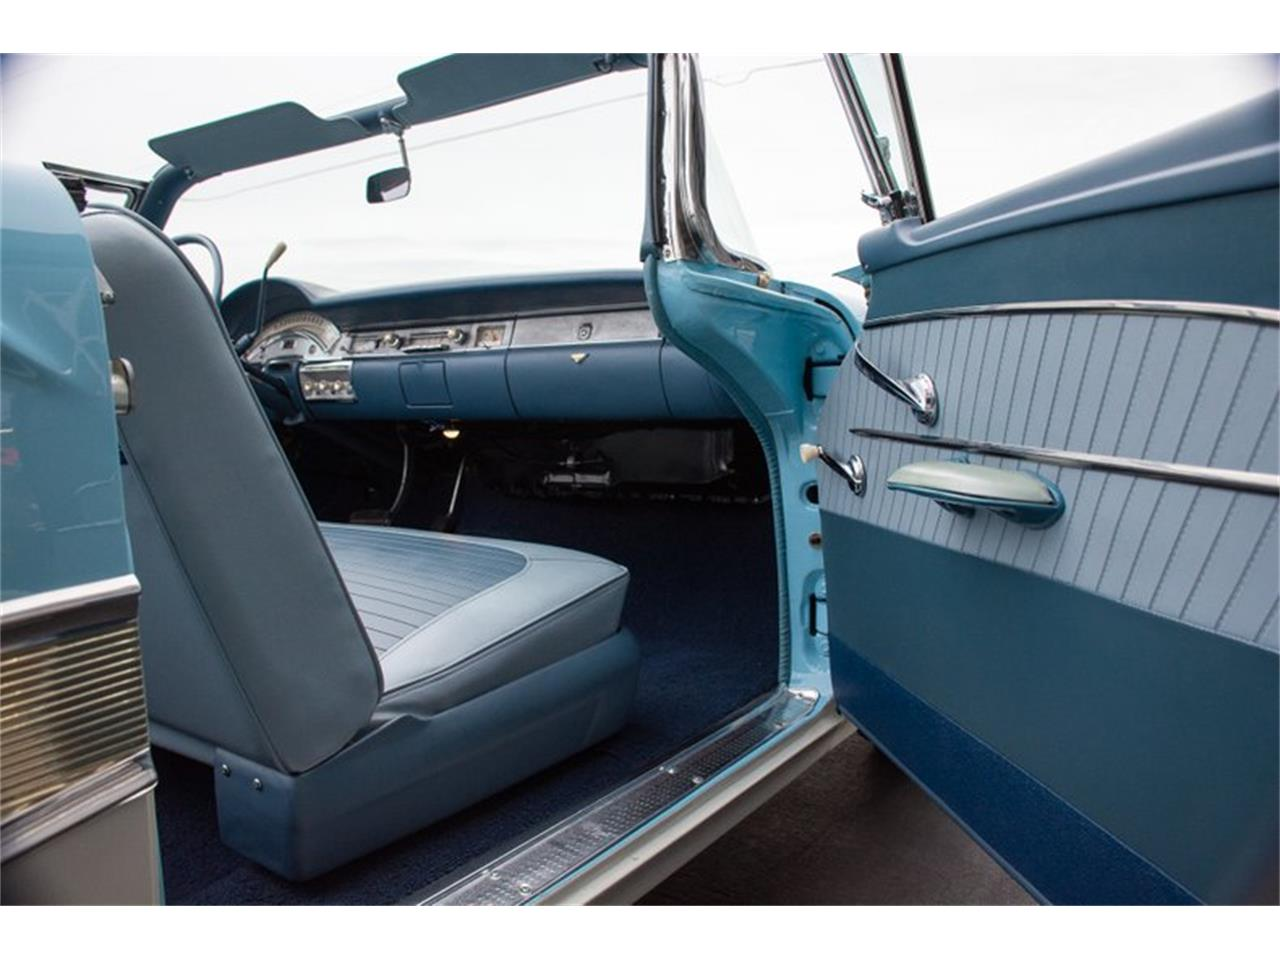 1958 Ford Fairlane Sunliner (CC-1373893) for sale in St. Charles, Missouri